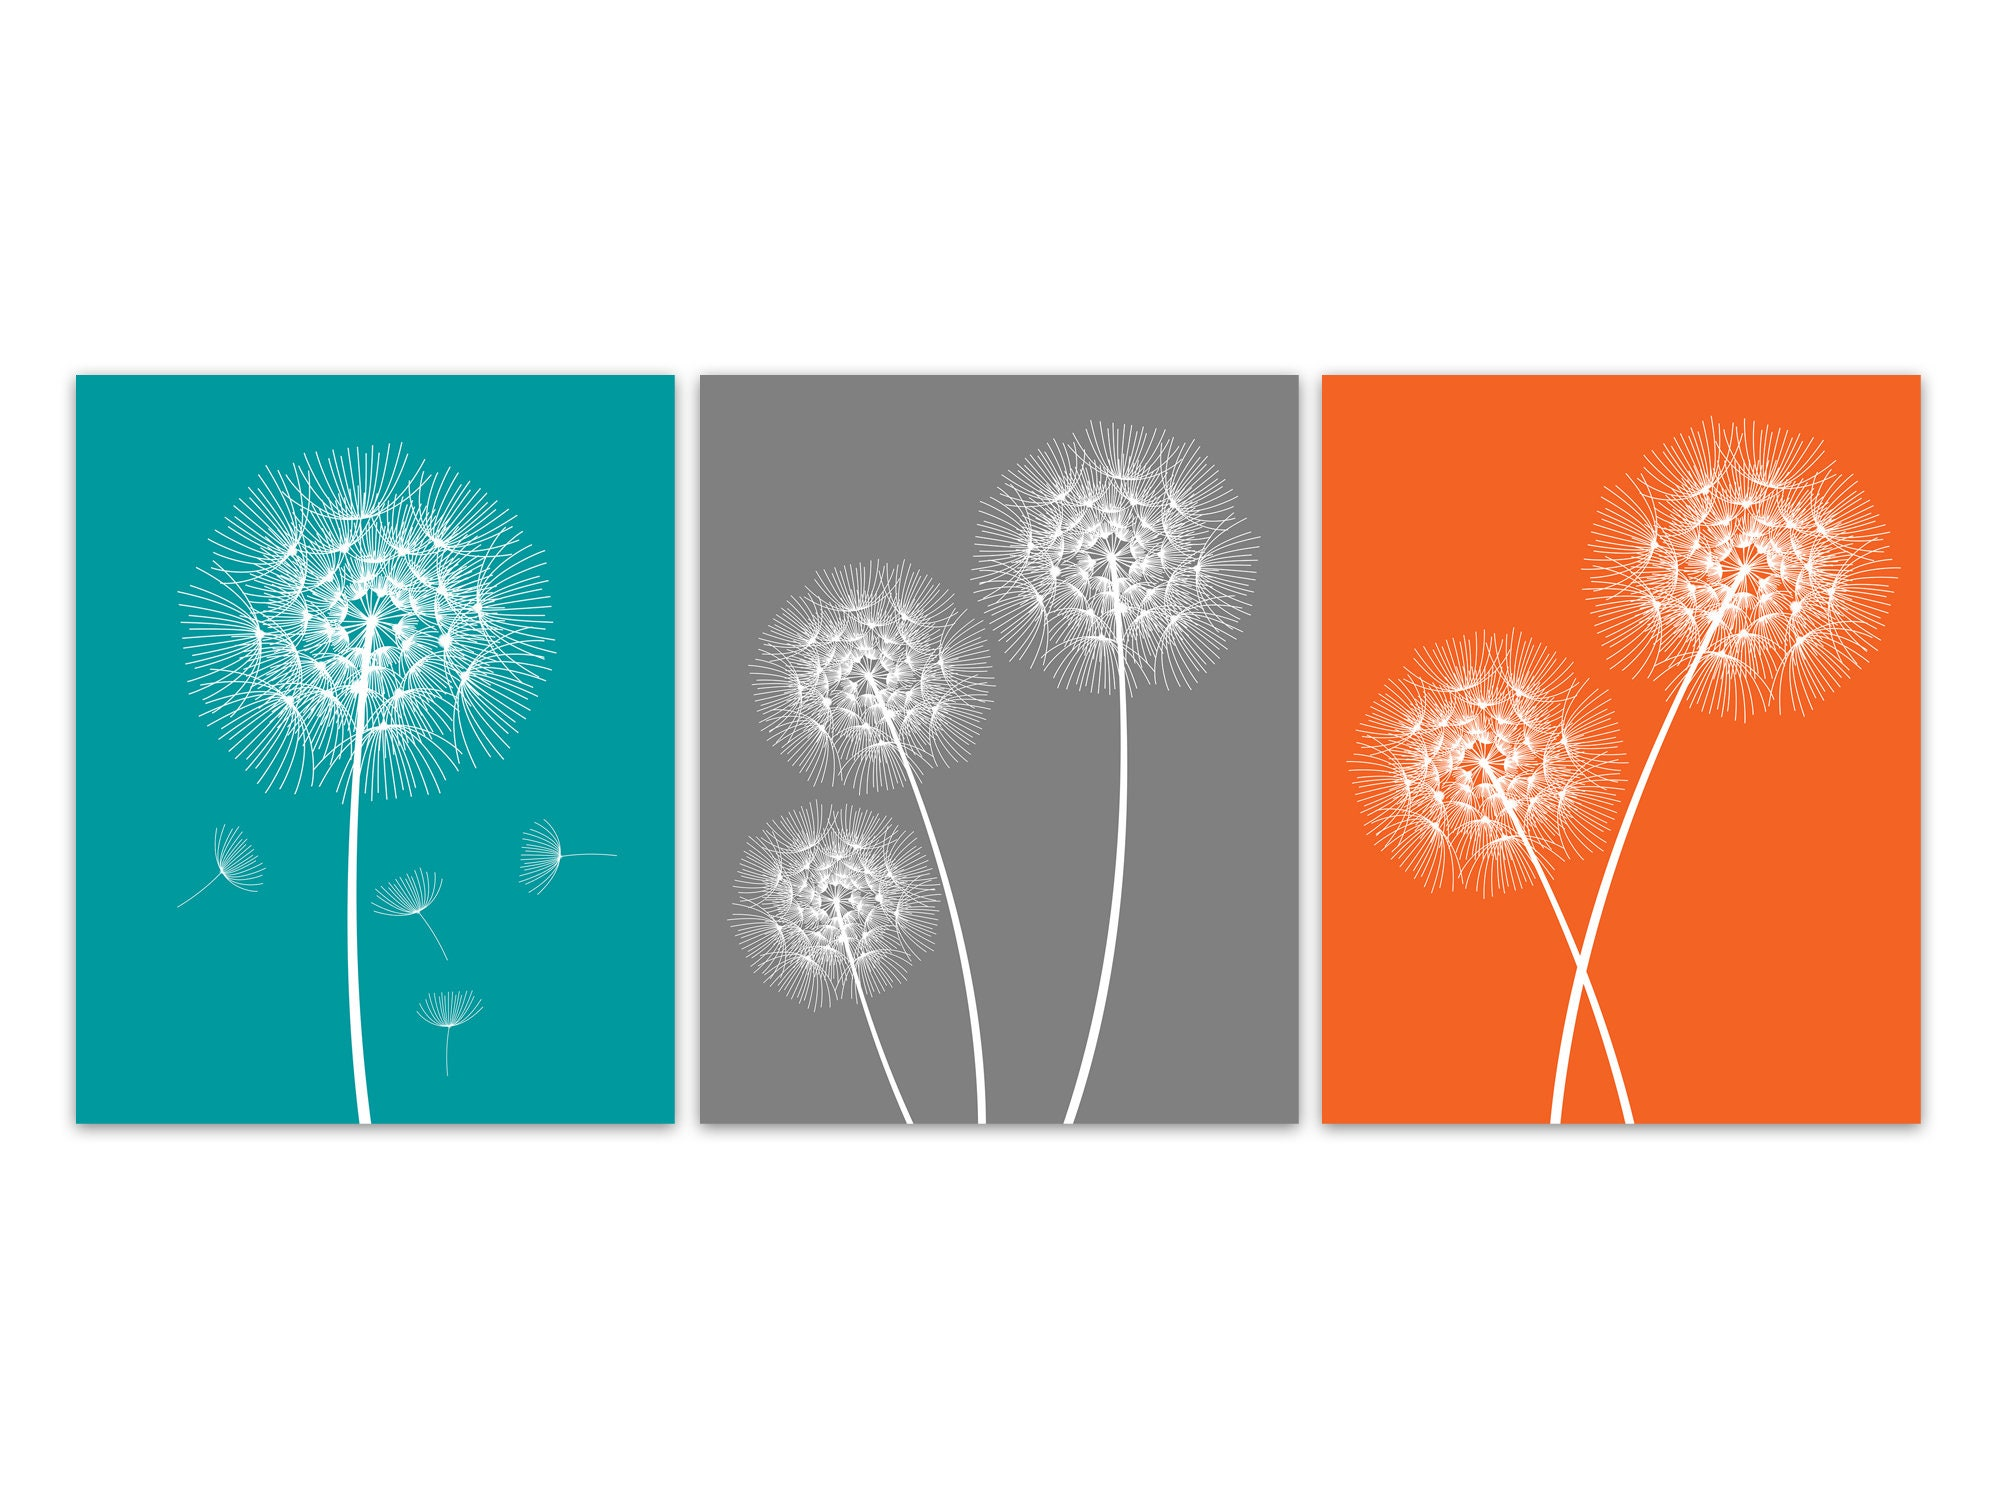 Teal Orange Wall Art PRINTS, Dandelion Artwork, Home Decor Canvas ...